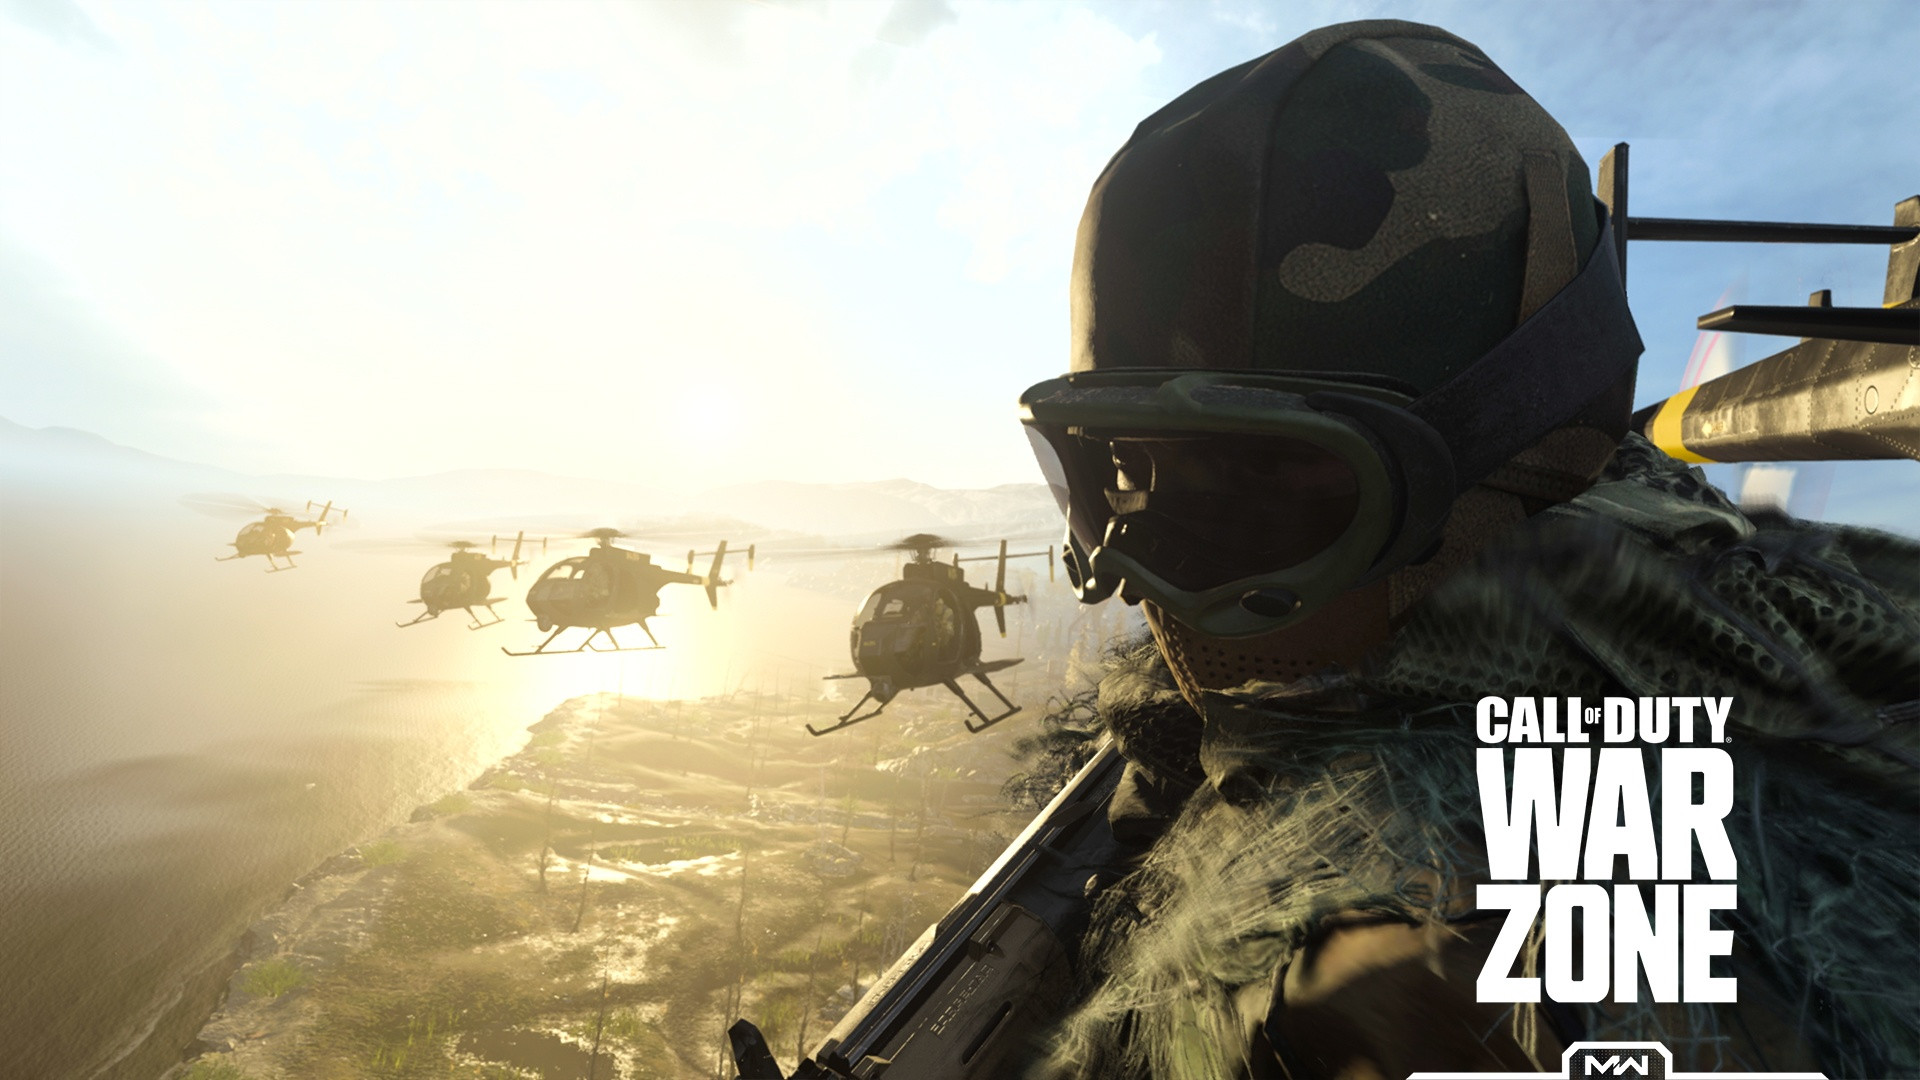 Call Of Duty Warzone Wallpaper 70854 1920x1080px